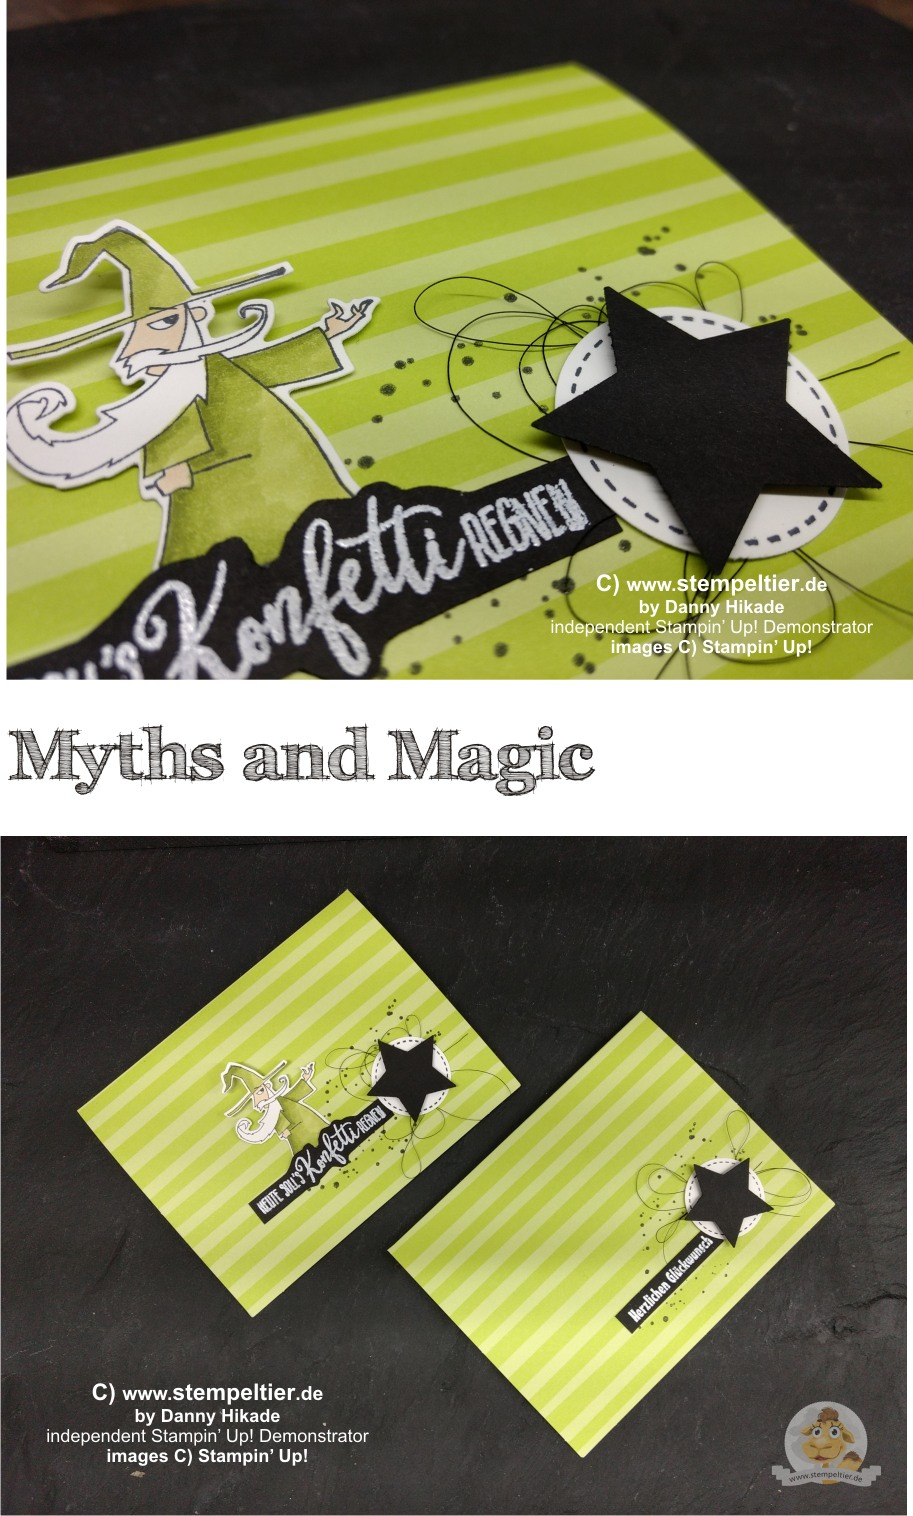 stampin up myths and magic suite sorcerer stempeltier